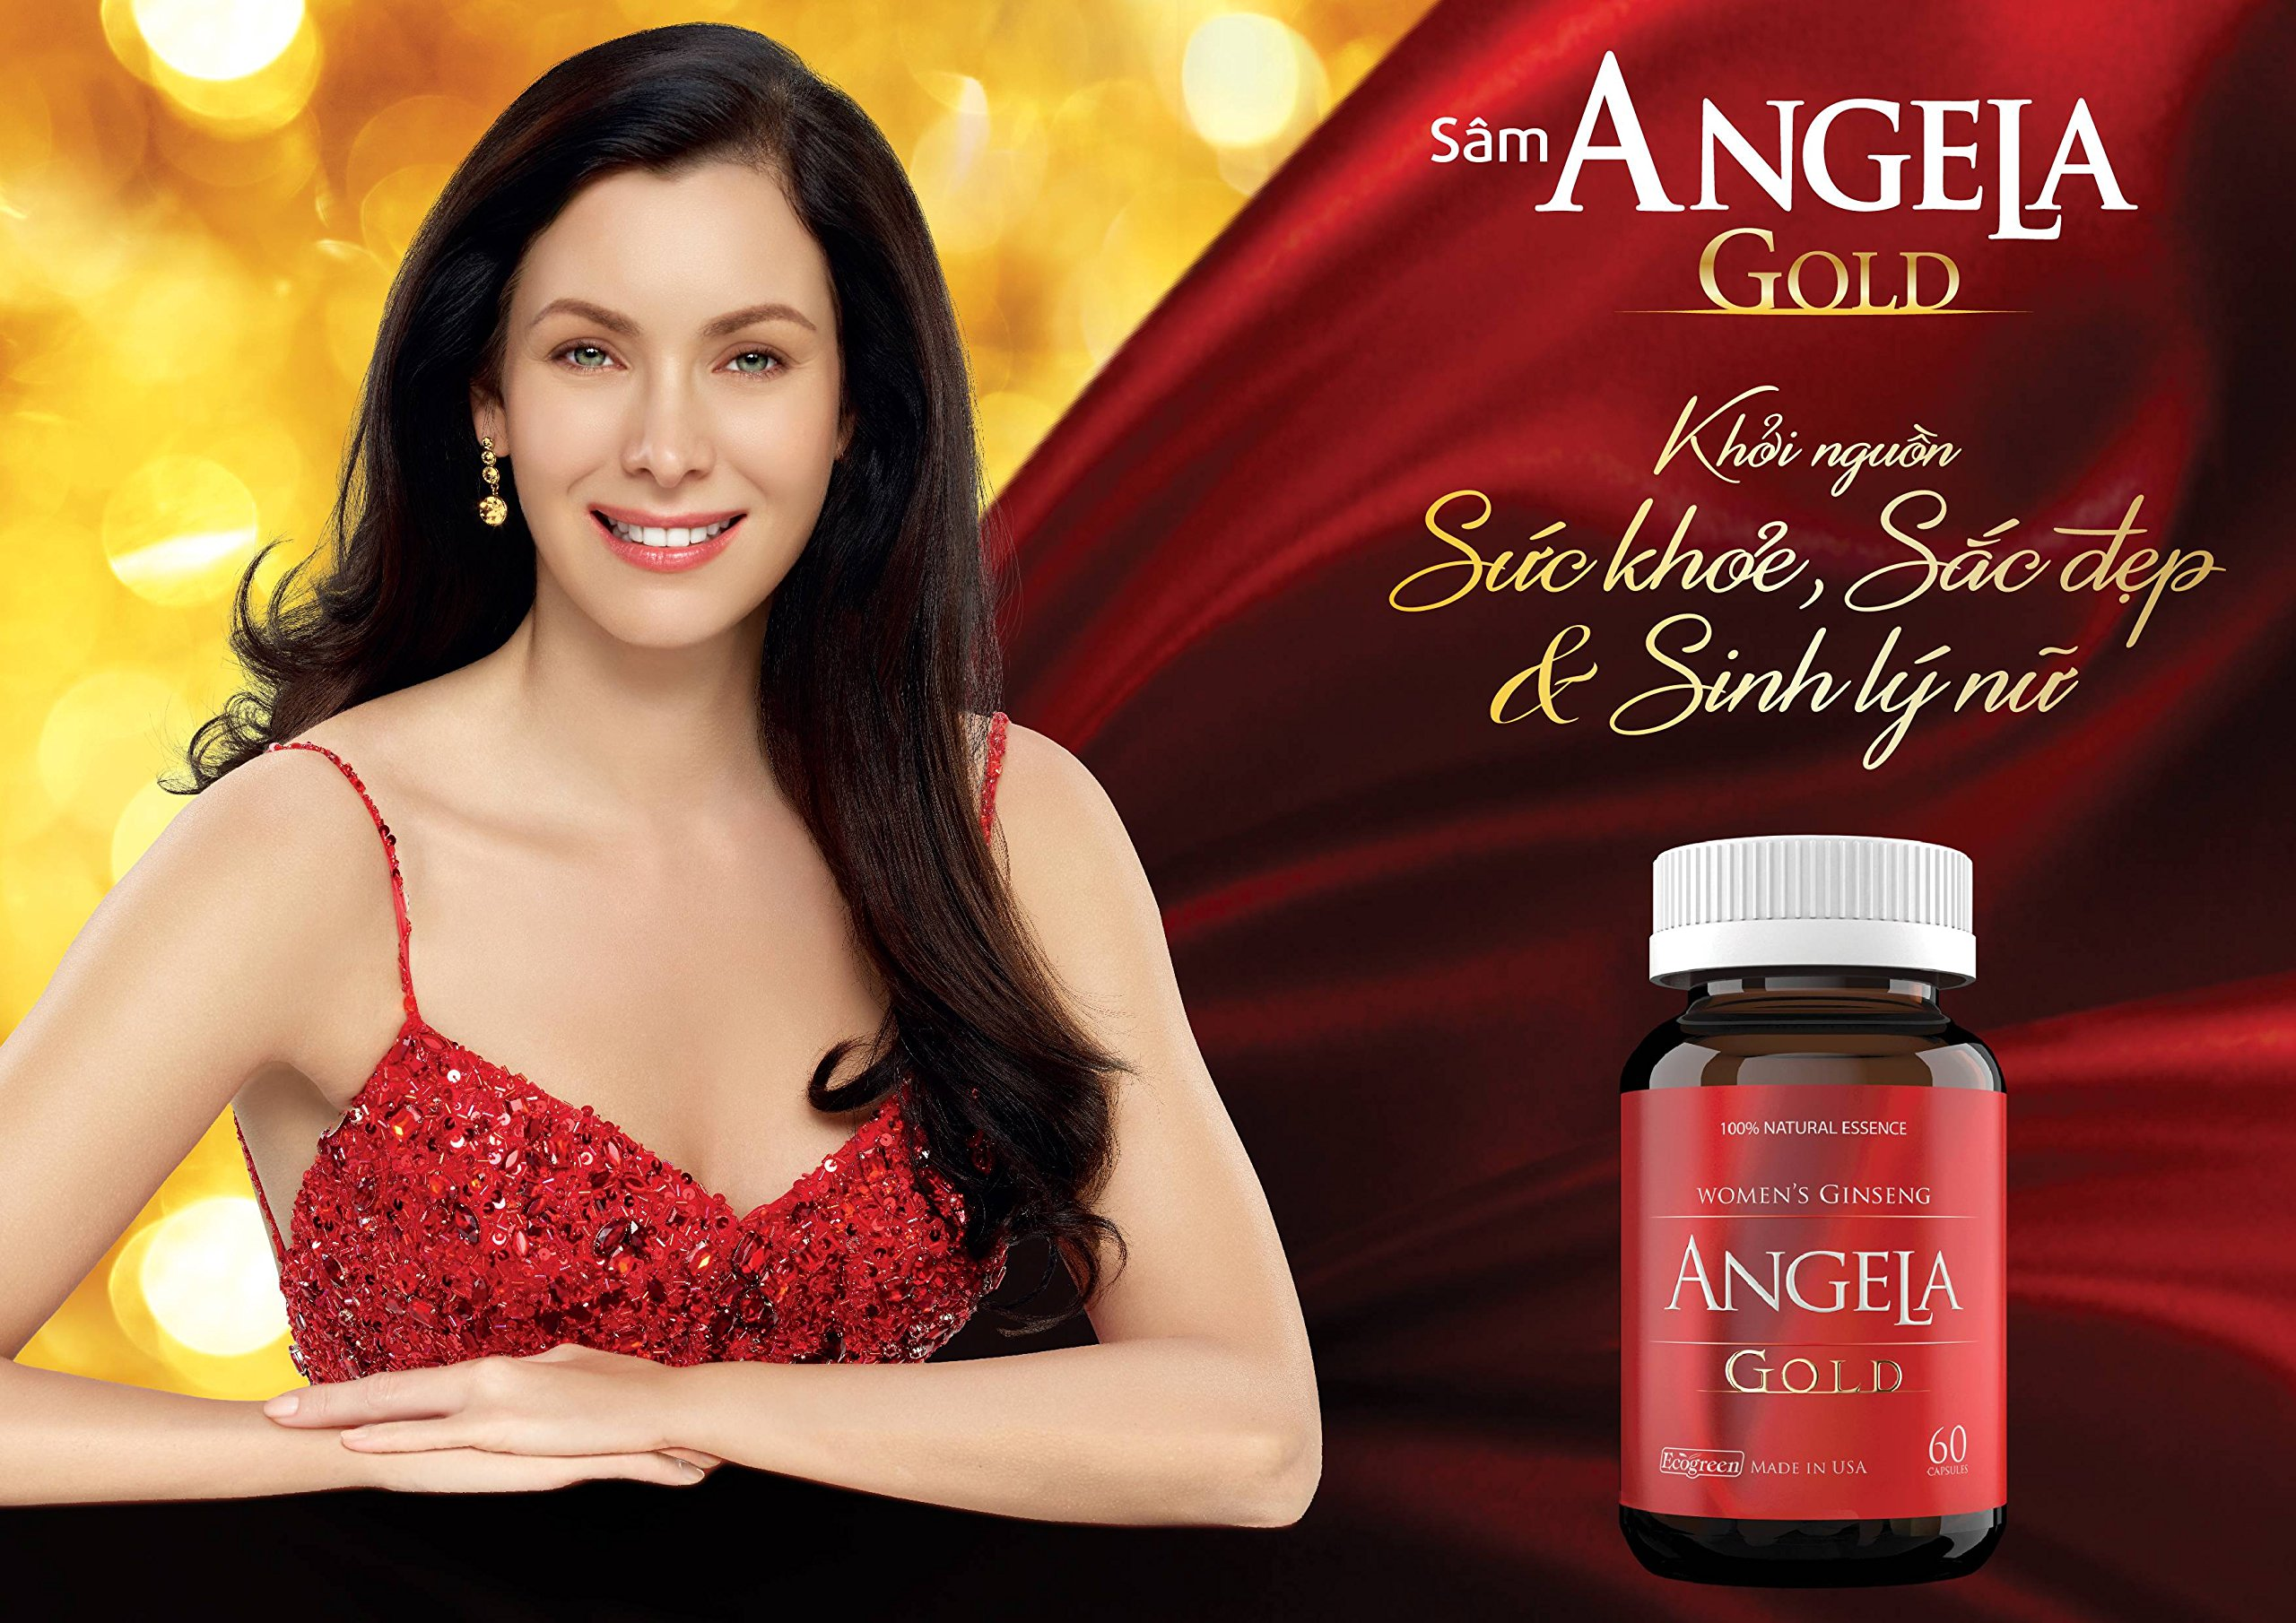 03 Box * 60 Capsule ANGELA GOLD Ginseng - Women Estrogen, Progesterone, Testosterone - Sexual Health-Ship from USA time 7-14 Days